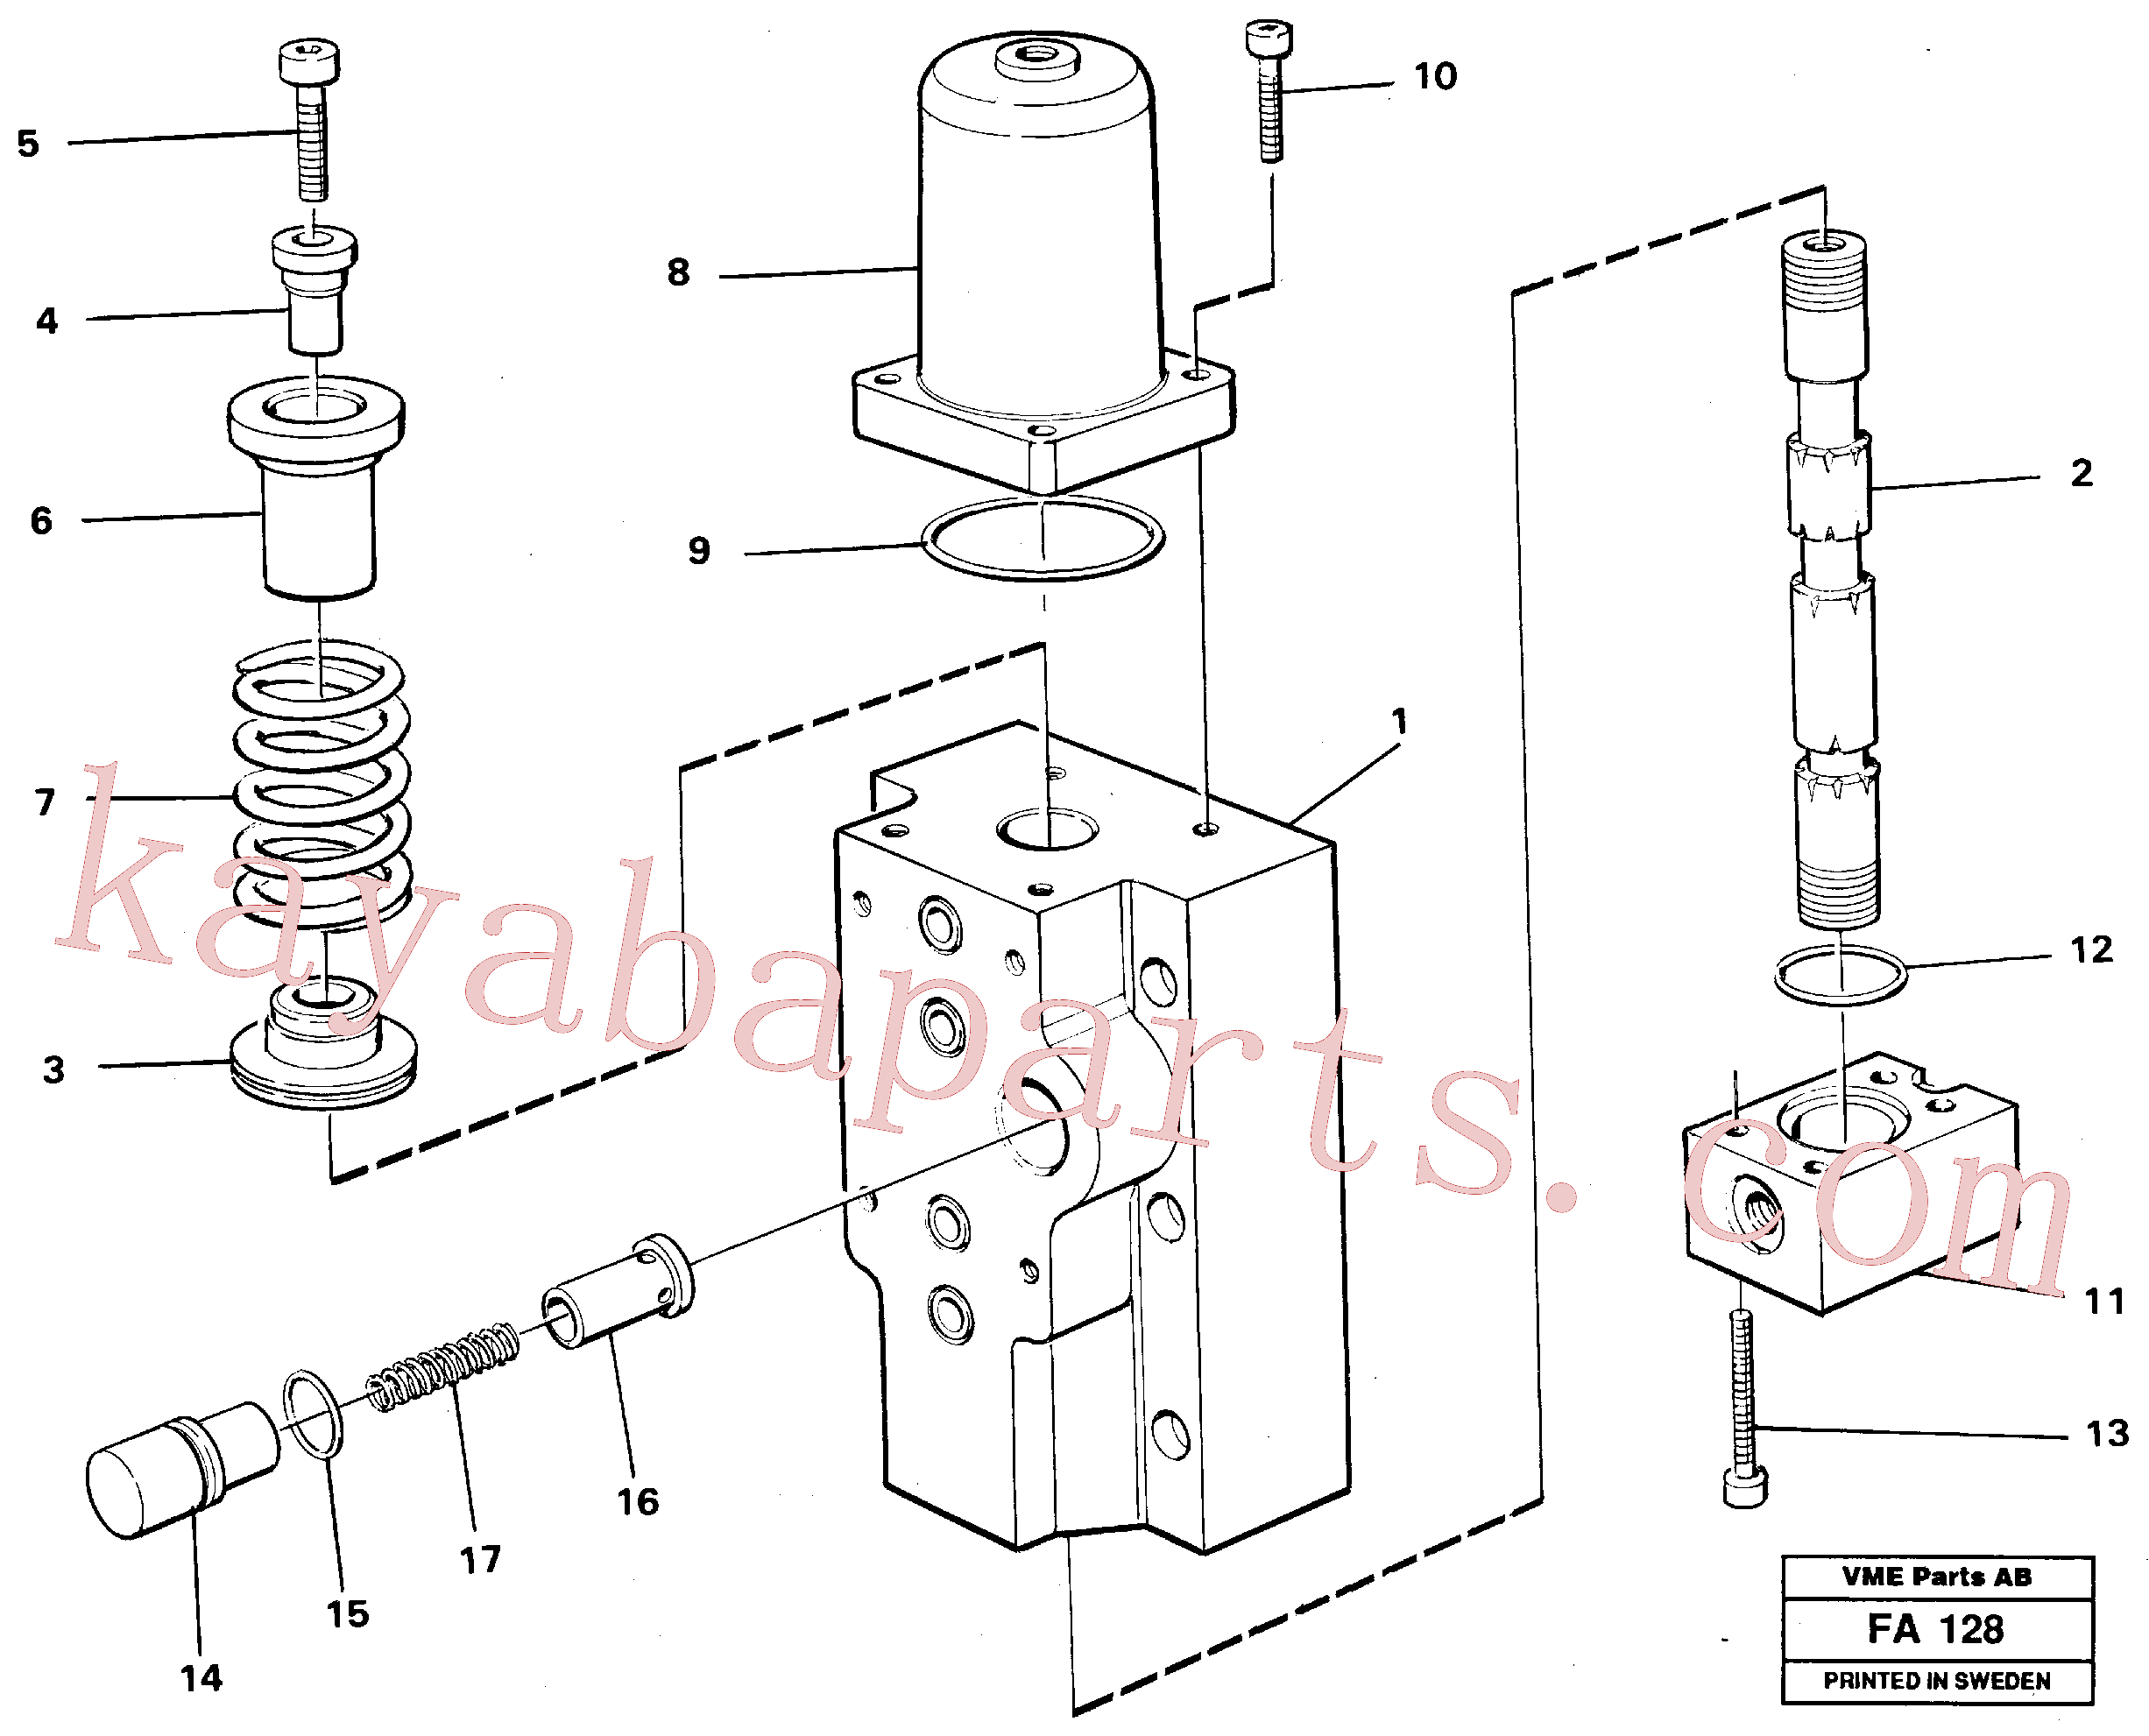 VOE14258011 for Volvo Four-way valve for hammer/shears, Four-way valves Primary(FA128 assembly)